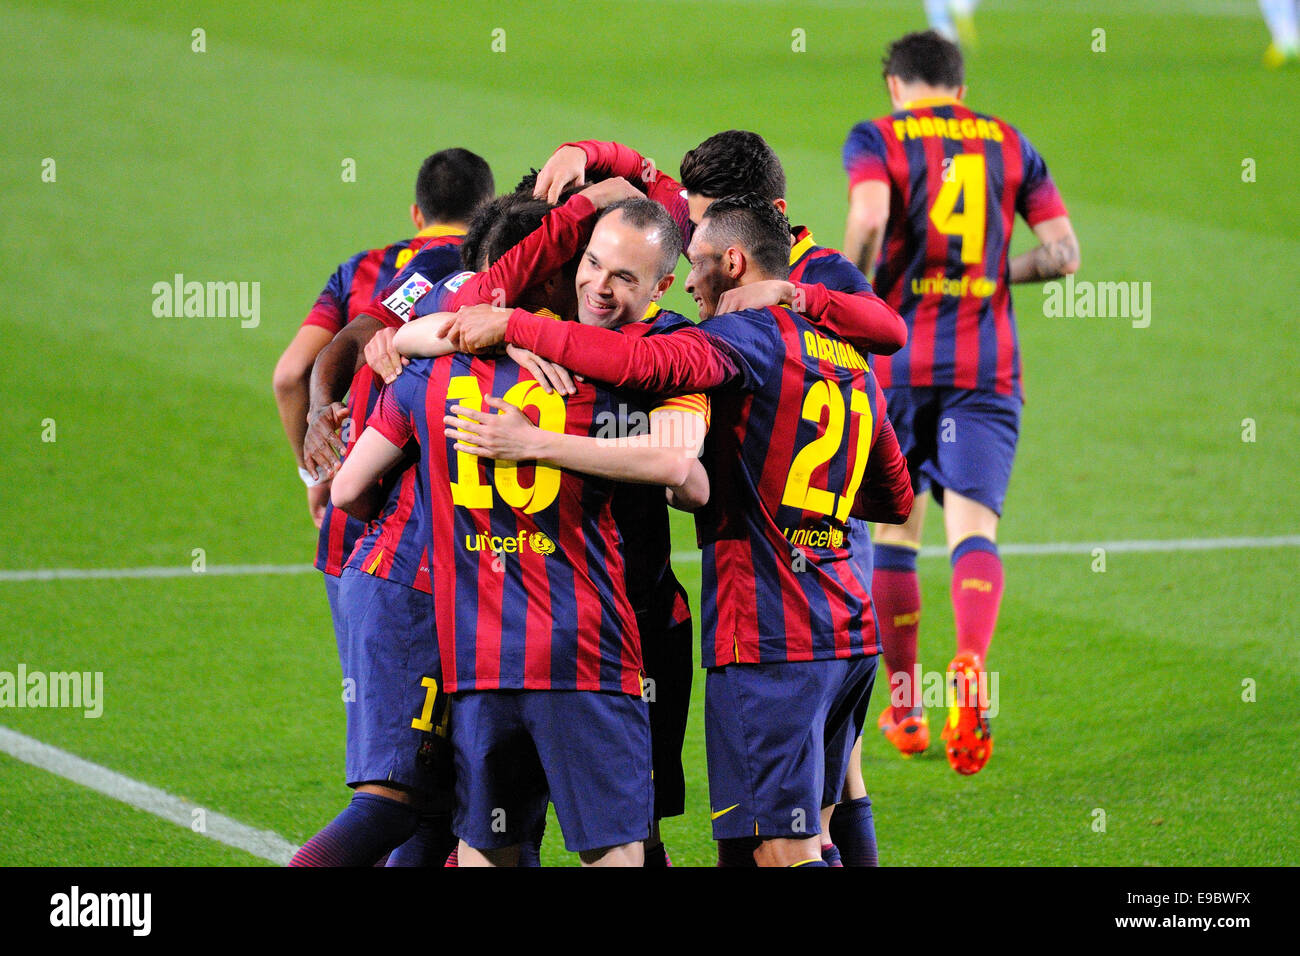 BARCELONA - APR 21: F.C. Barcelona footballers celebrate a goal against Athletic Bilbao at the Camp Nou Stadium. - Stock Image